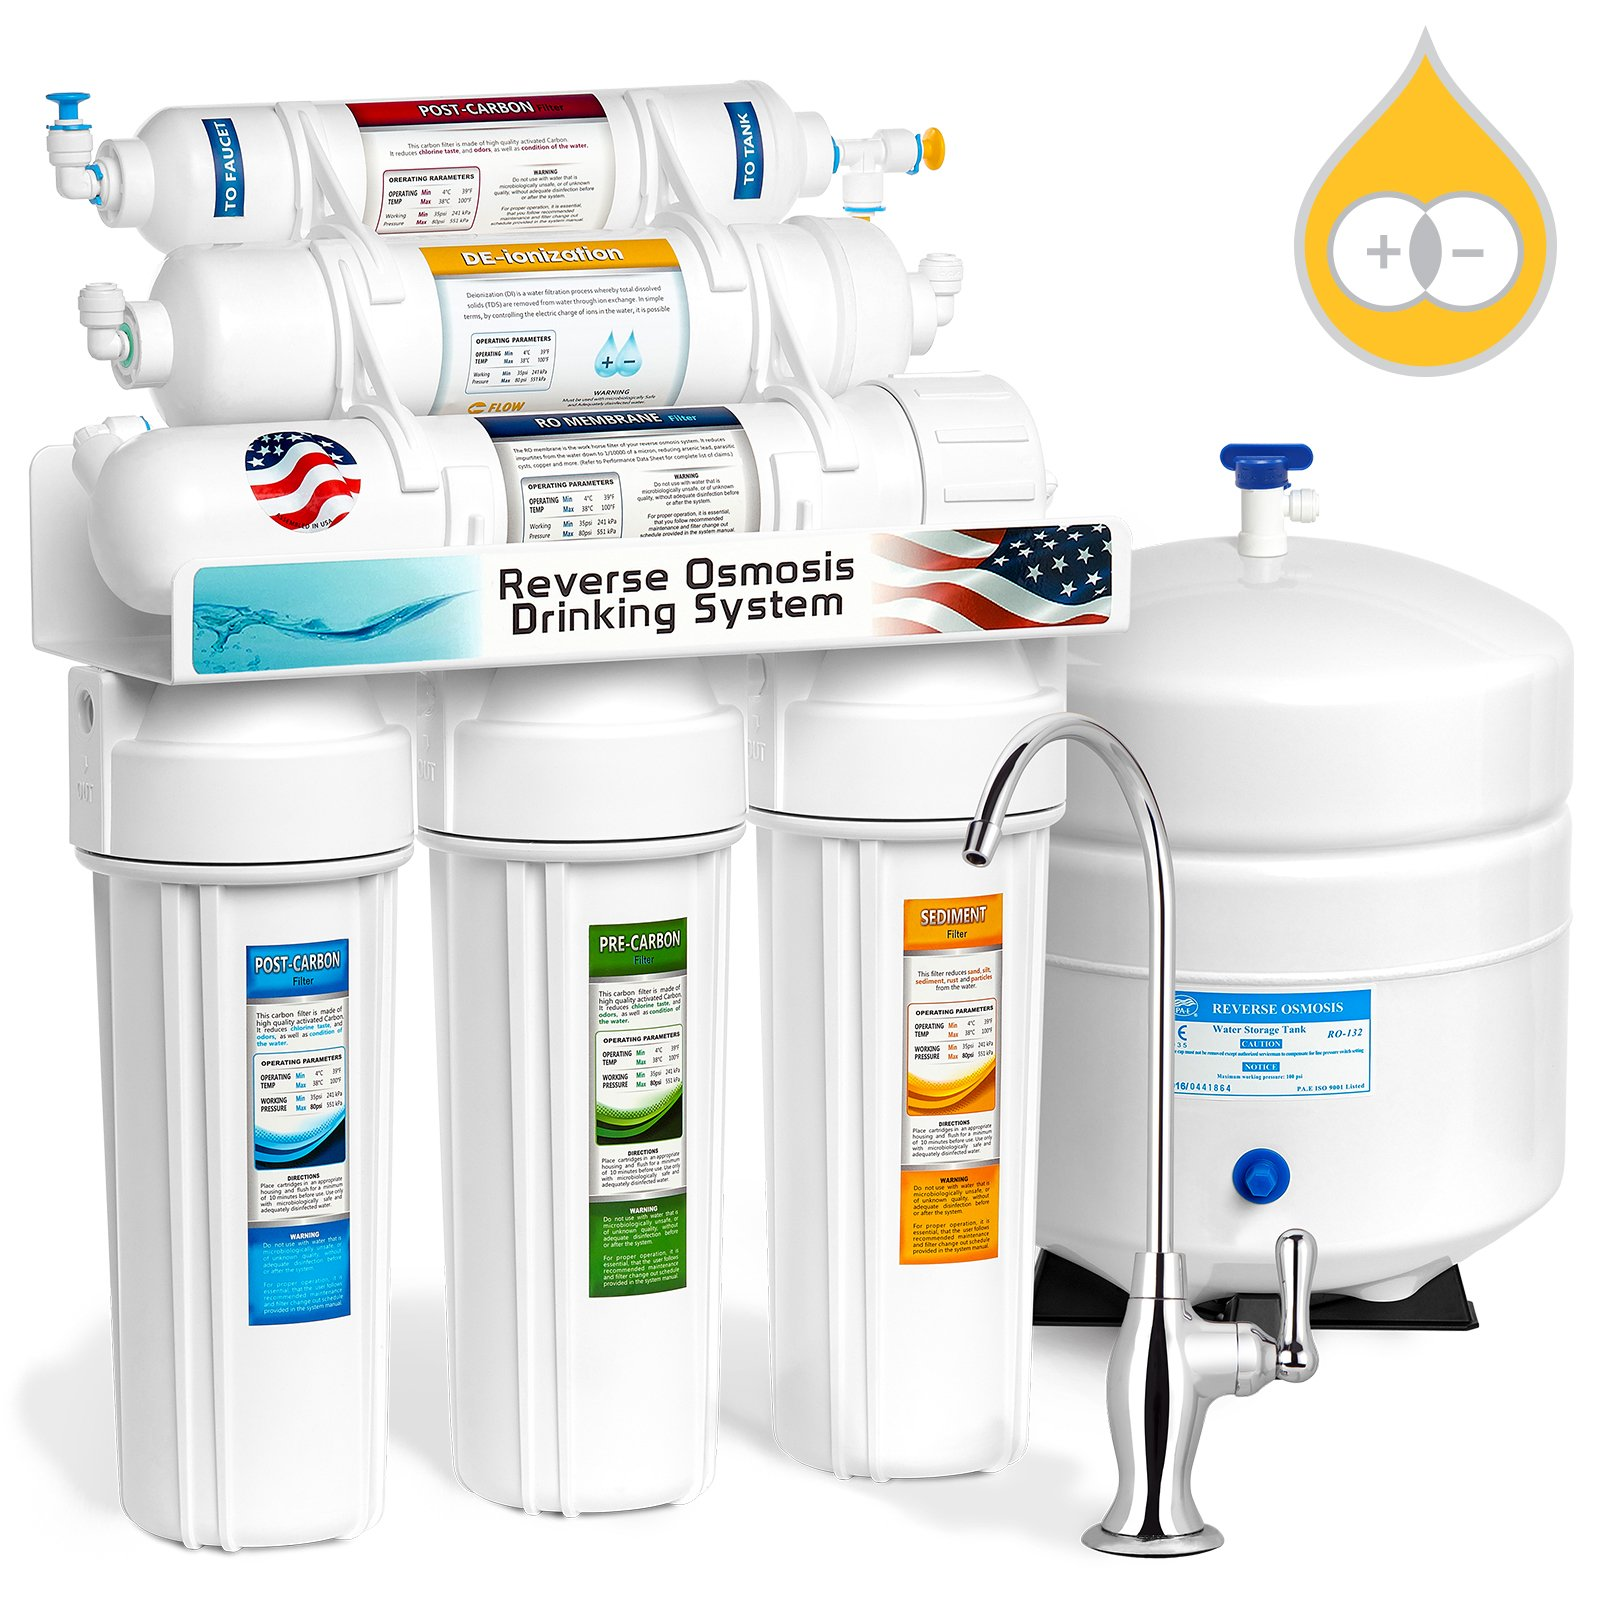 Express Water RODI10D 6 Stage Deionization + Reverse Osmosis Drinking Water Filtration System 100 GPD RO Membrane DI Resin Mixed Bed Ion Exchange Filter Residential Under Sink by Express Water